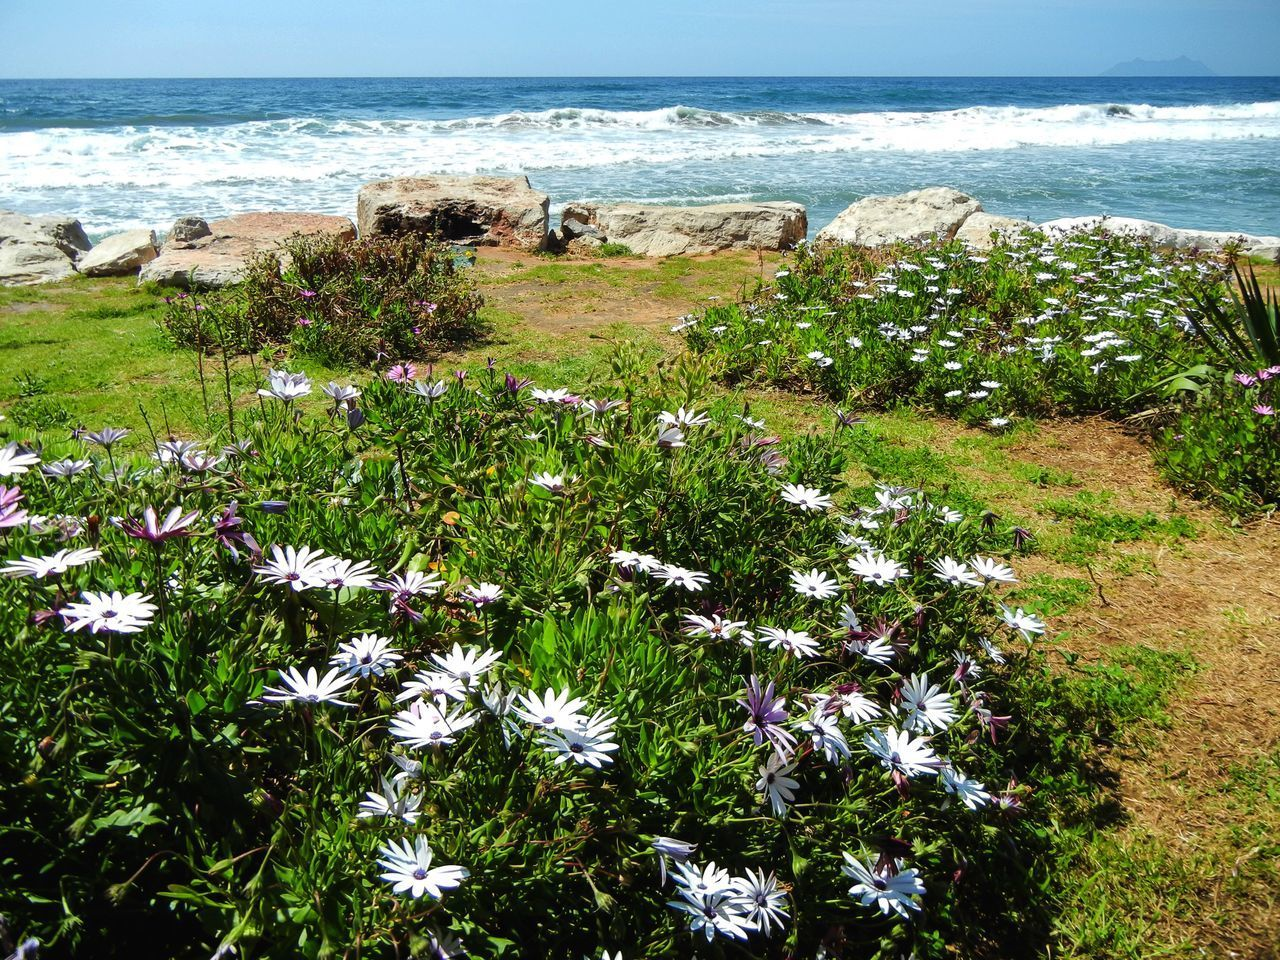 SCENIC VIEW OF SEA AND PLANTS ON SHORE